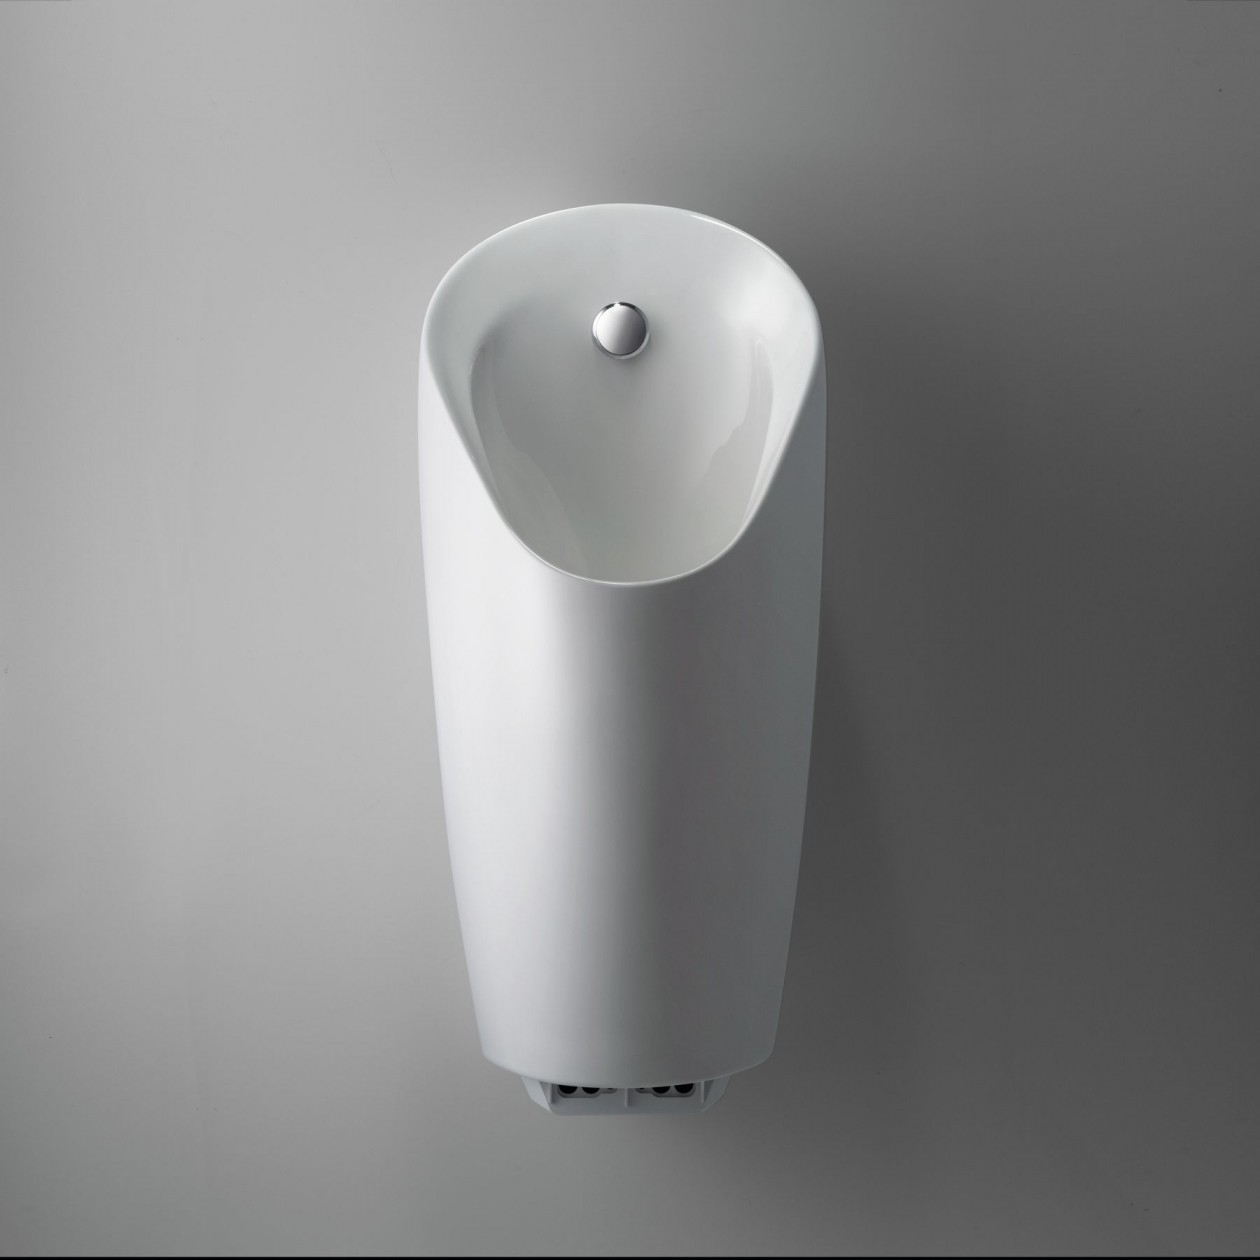 w3_Urinal Preda integrated control full packshot at wall.jpg